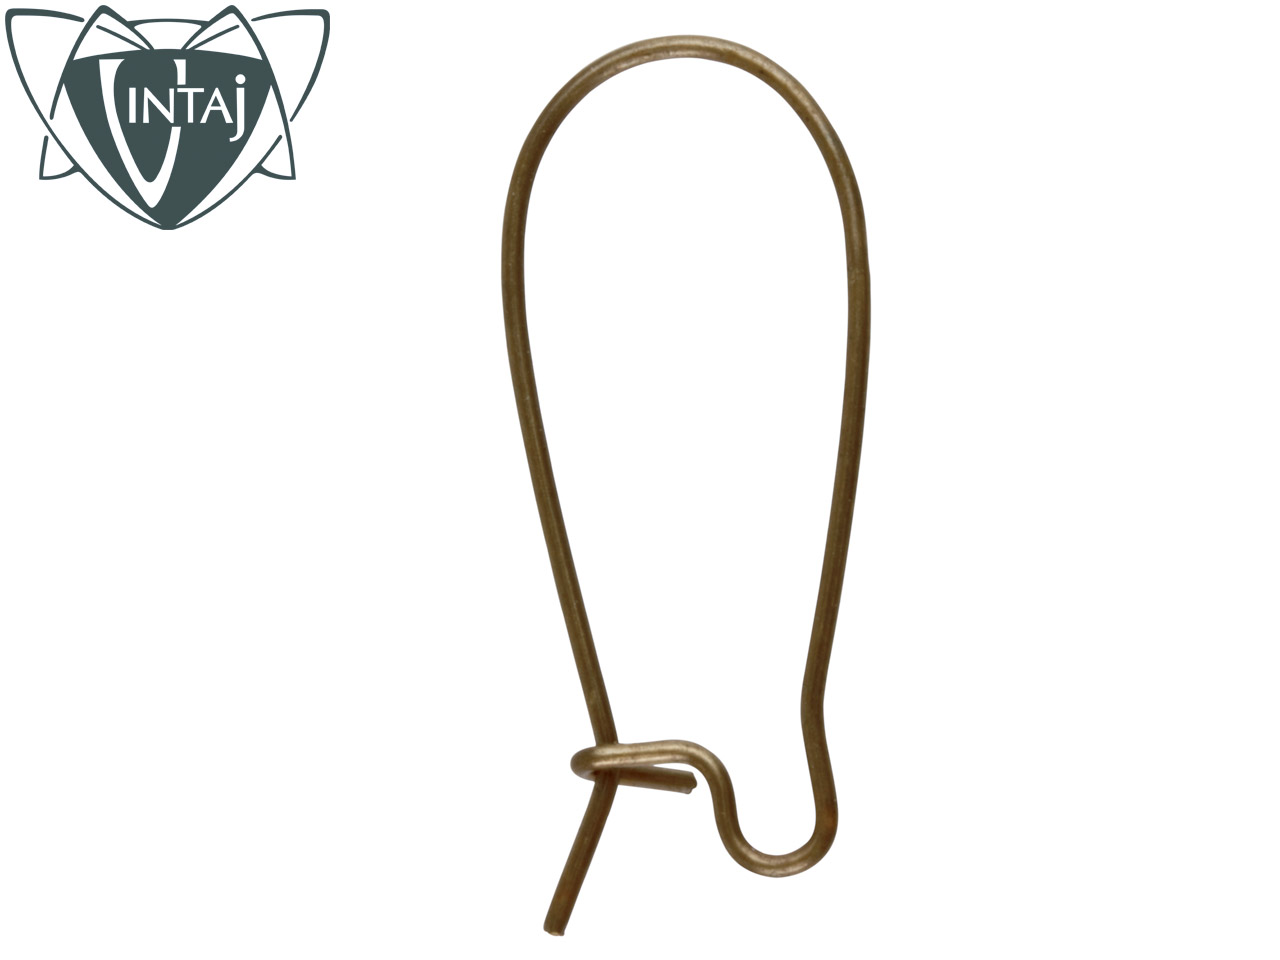 Vintaj Brass Arched Safety Hook Ear Wire Pack Of 4